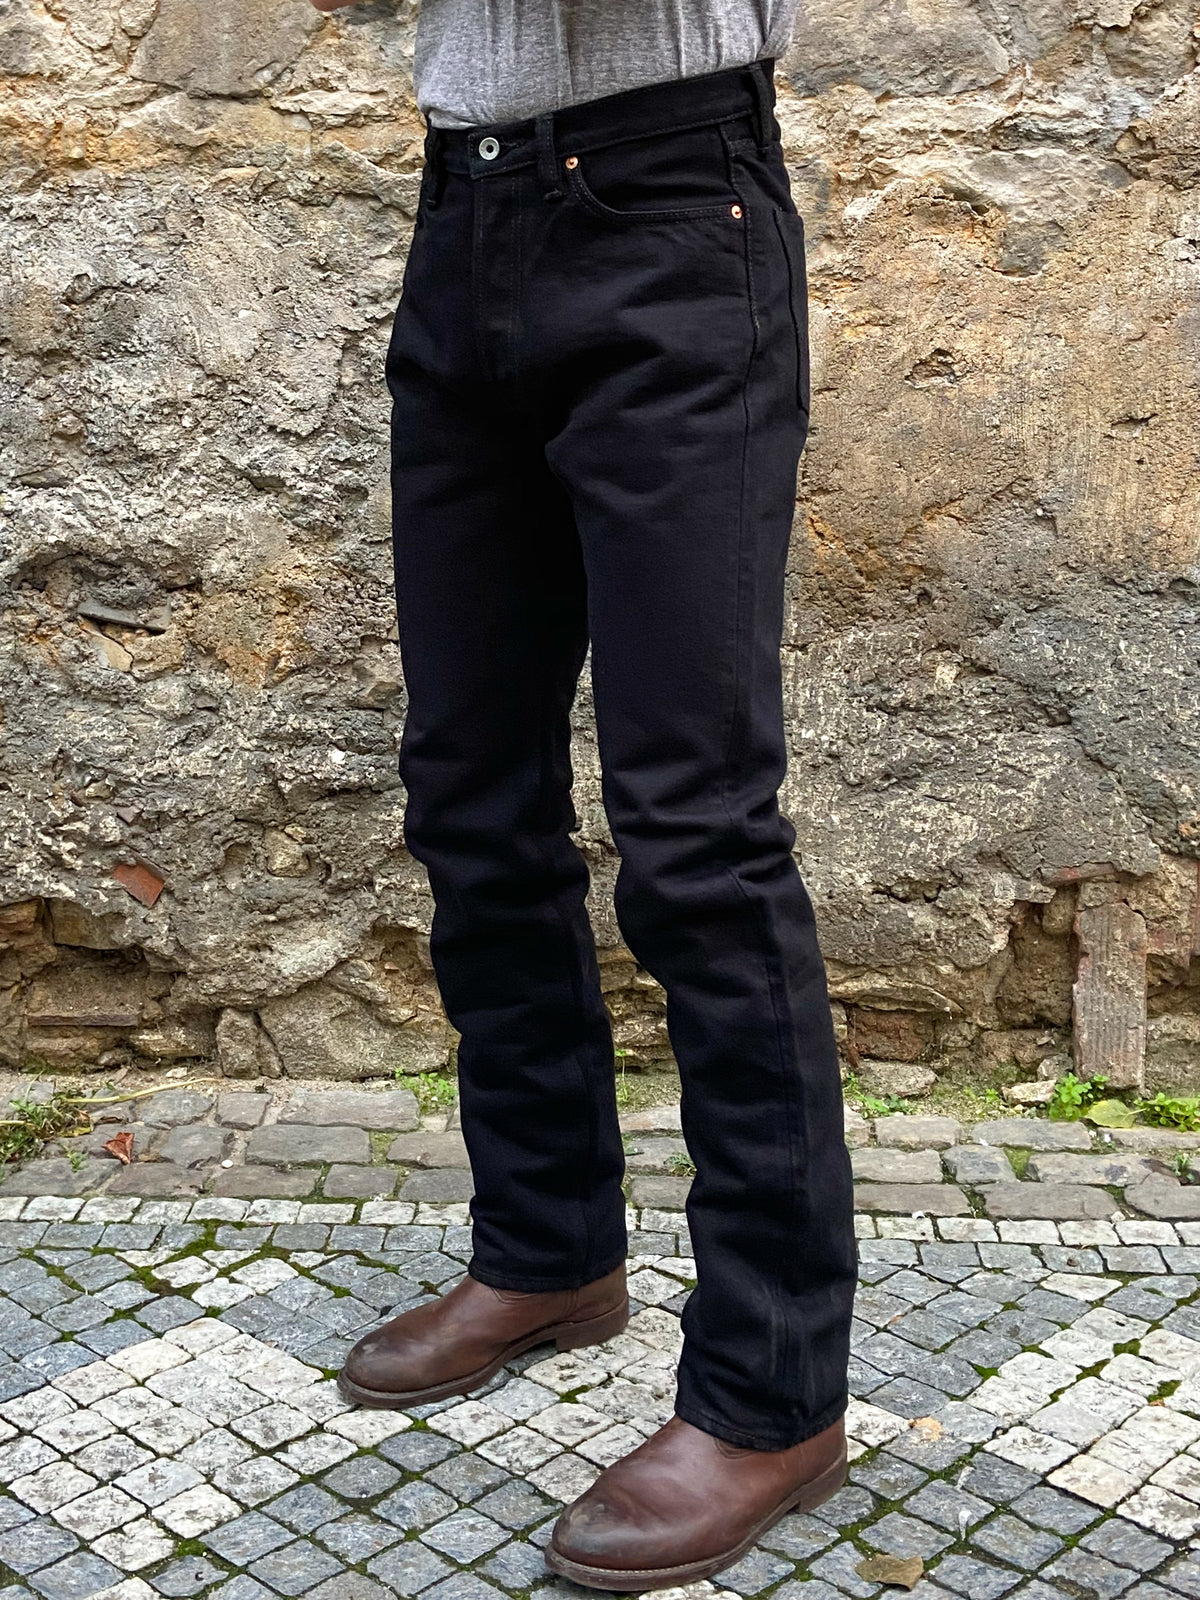 Iron Heart IH-888S-21mb 21oz Selvedge Denim Medium/High Rise Tapered Cut Jeans – Mad Black